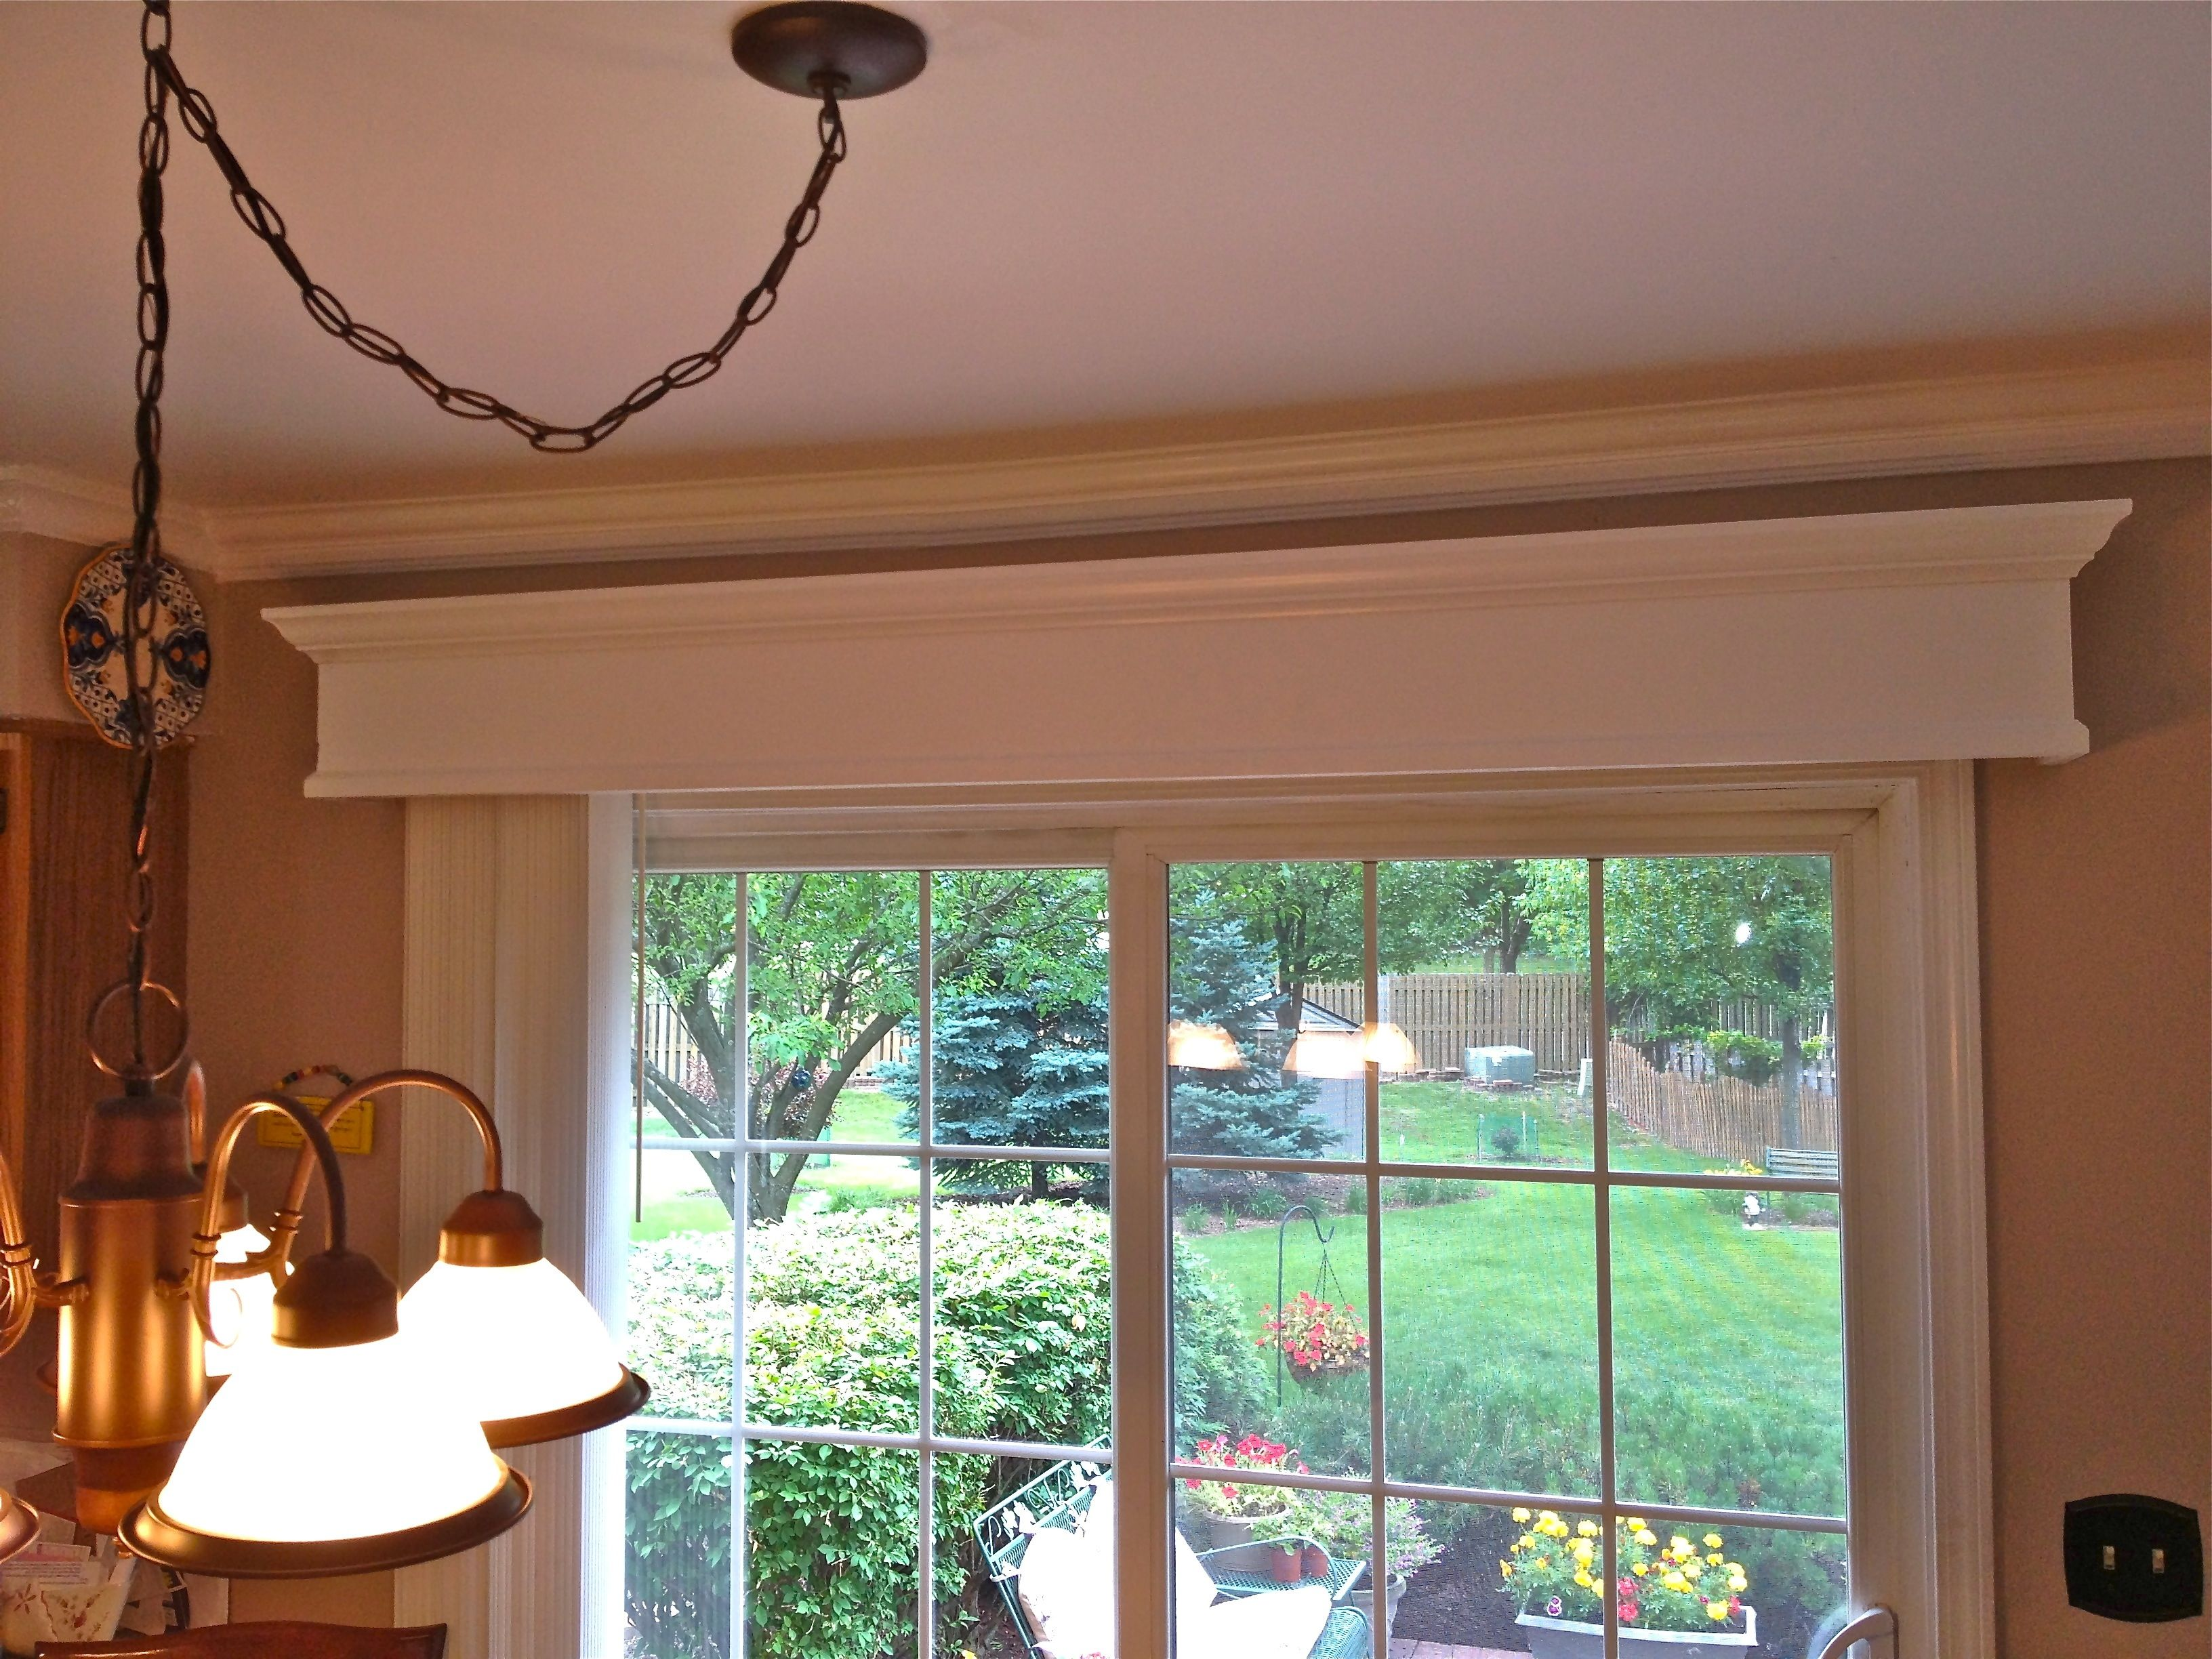 Wood Cornice For Sliding Glass Door Wooden Valance Curtains With Blinds Vertical Blinds Valance